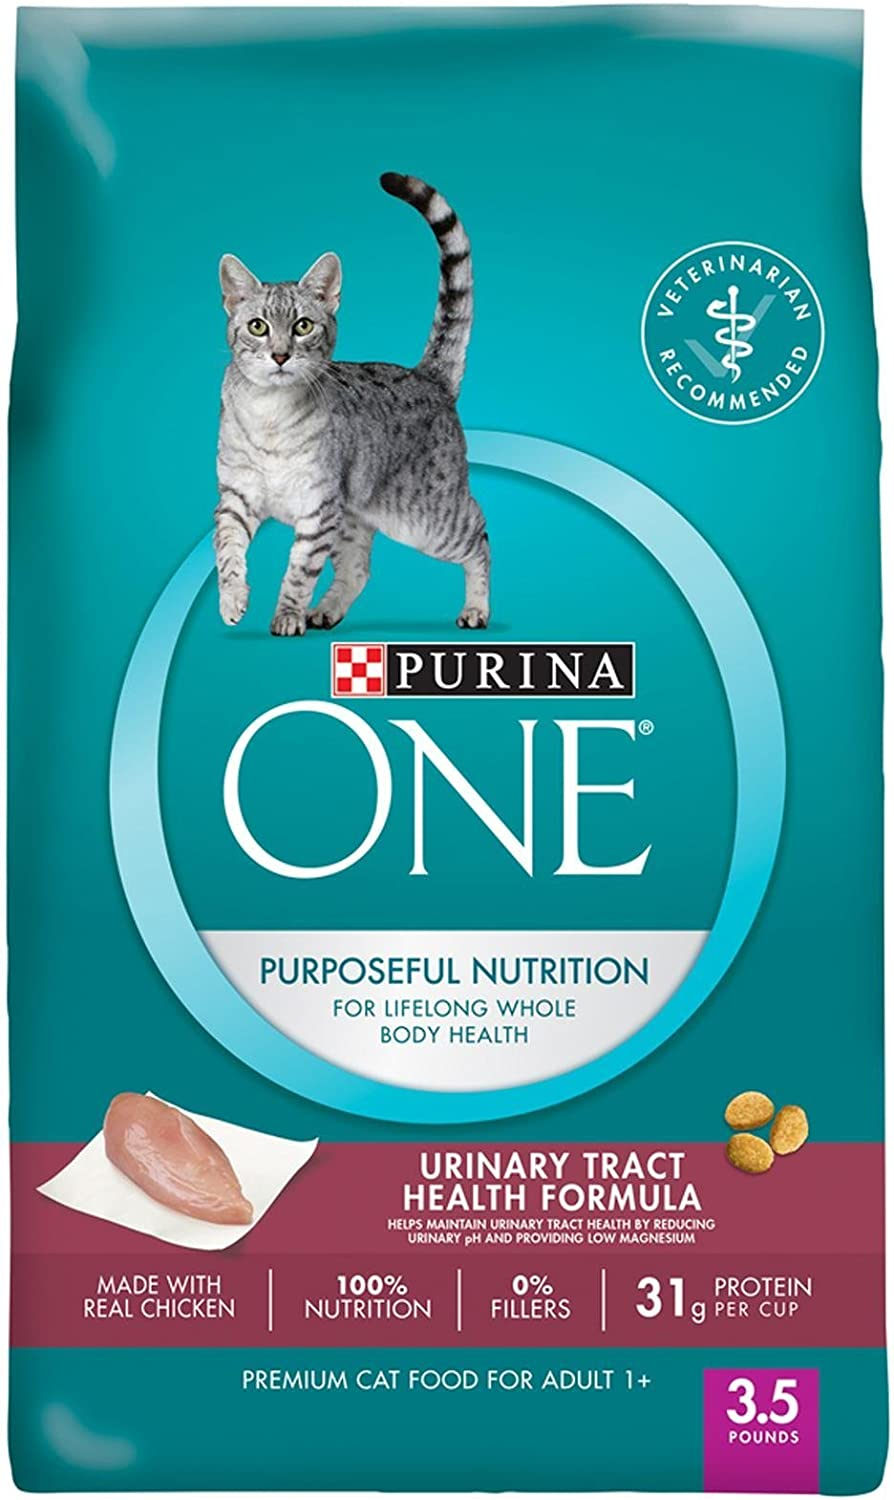 Purina One Purposeful Nutrition Dry Cat Food - Adult Urinary Tract Health Formula, 3.5 Lb